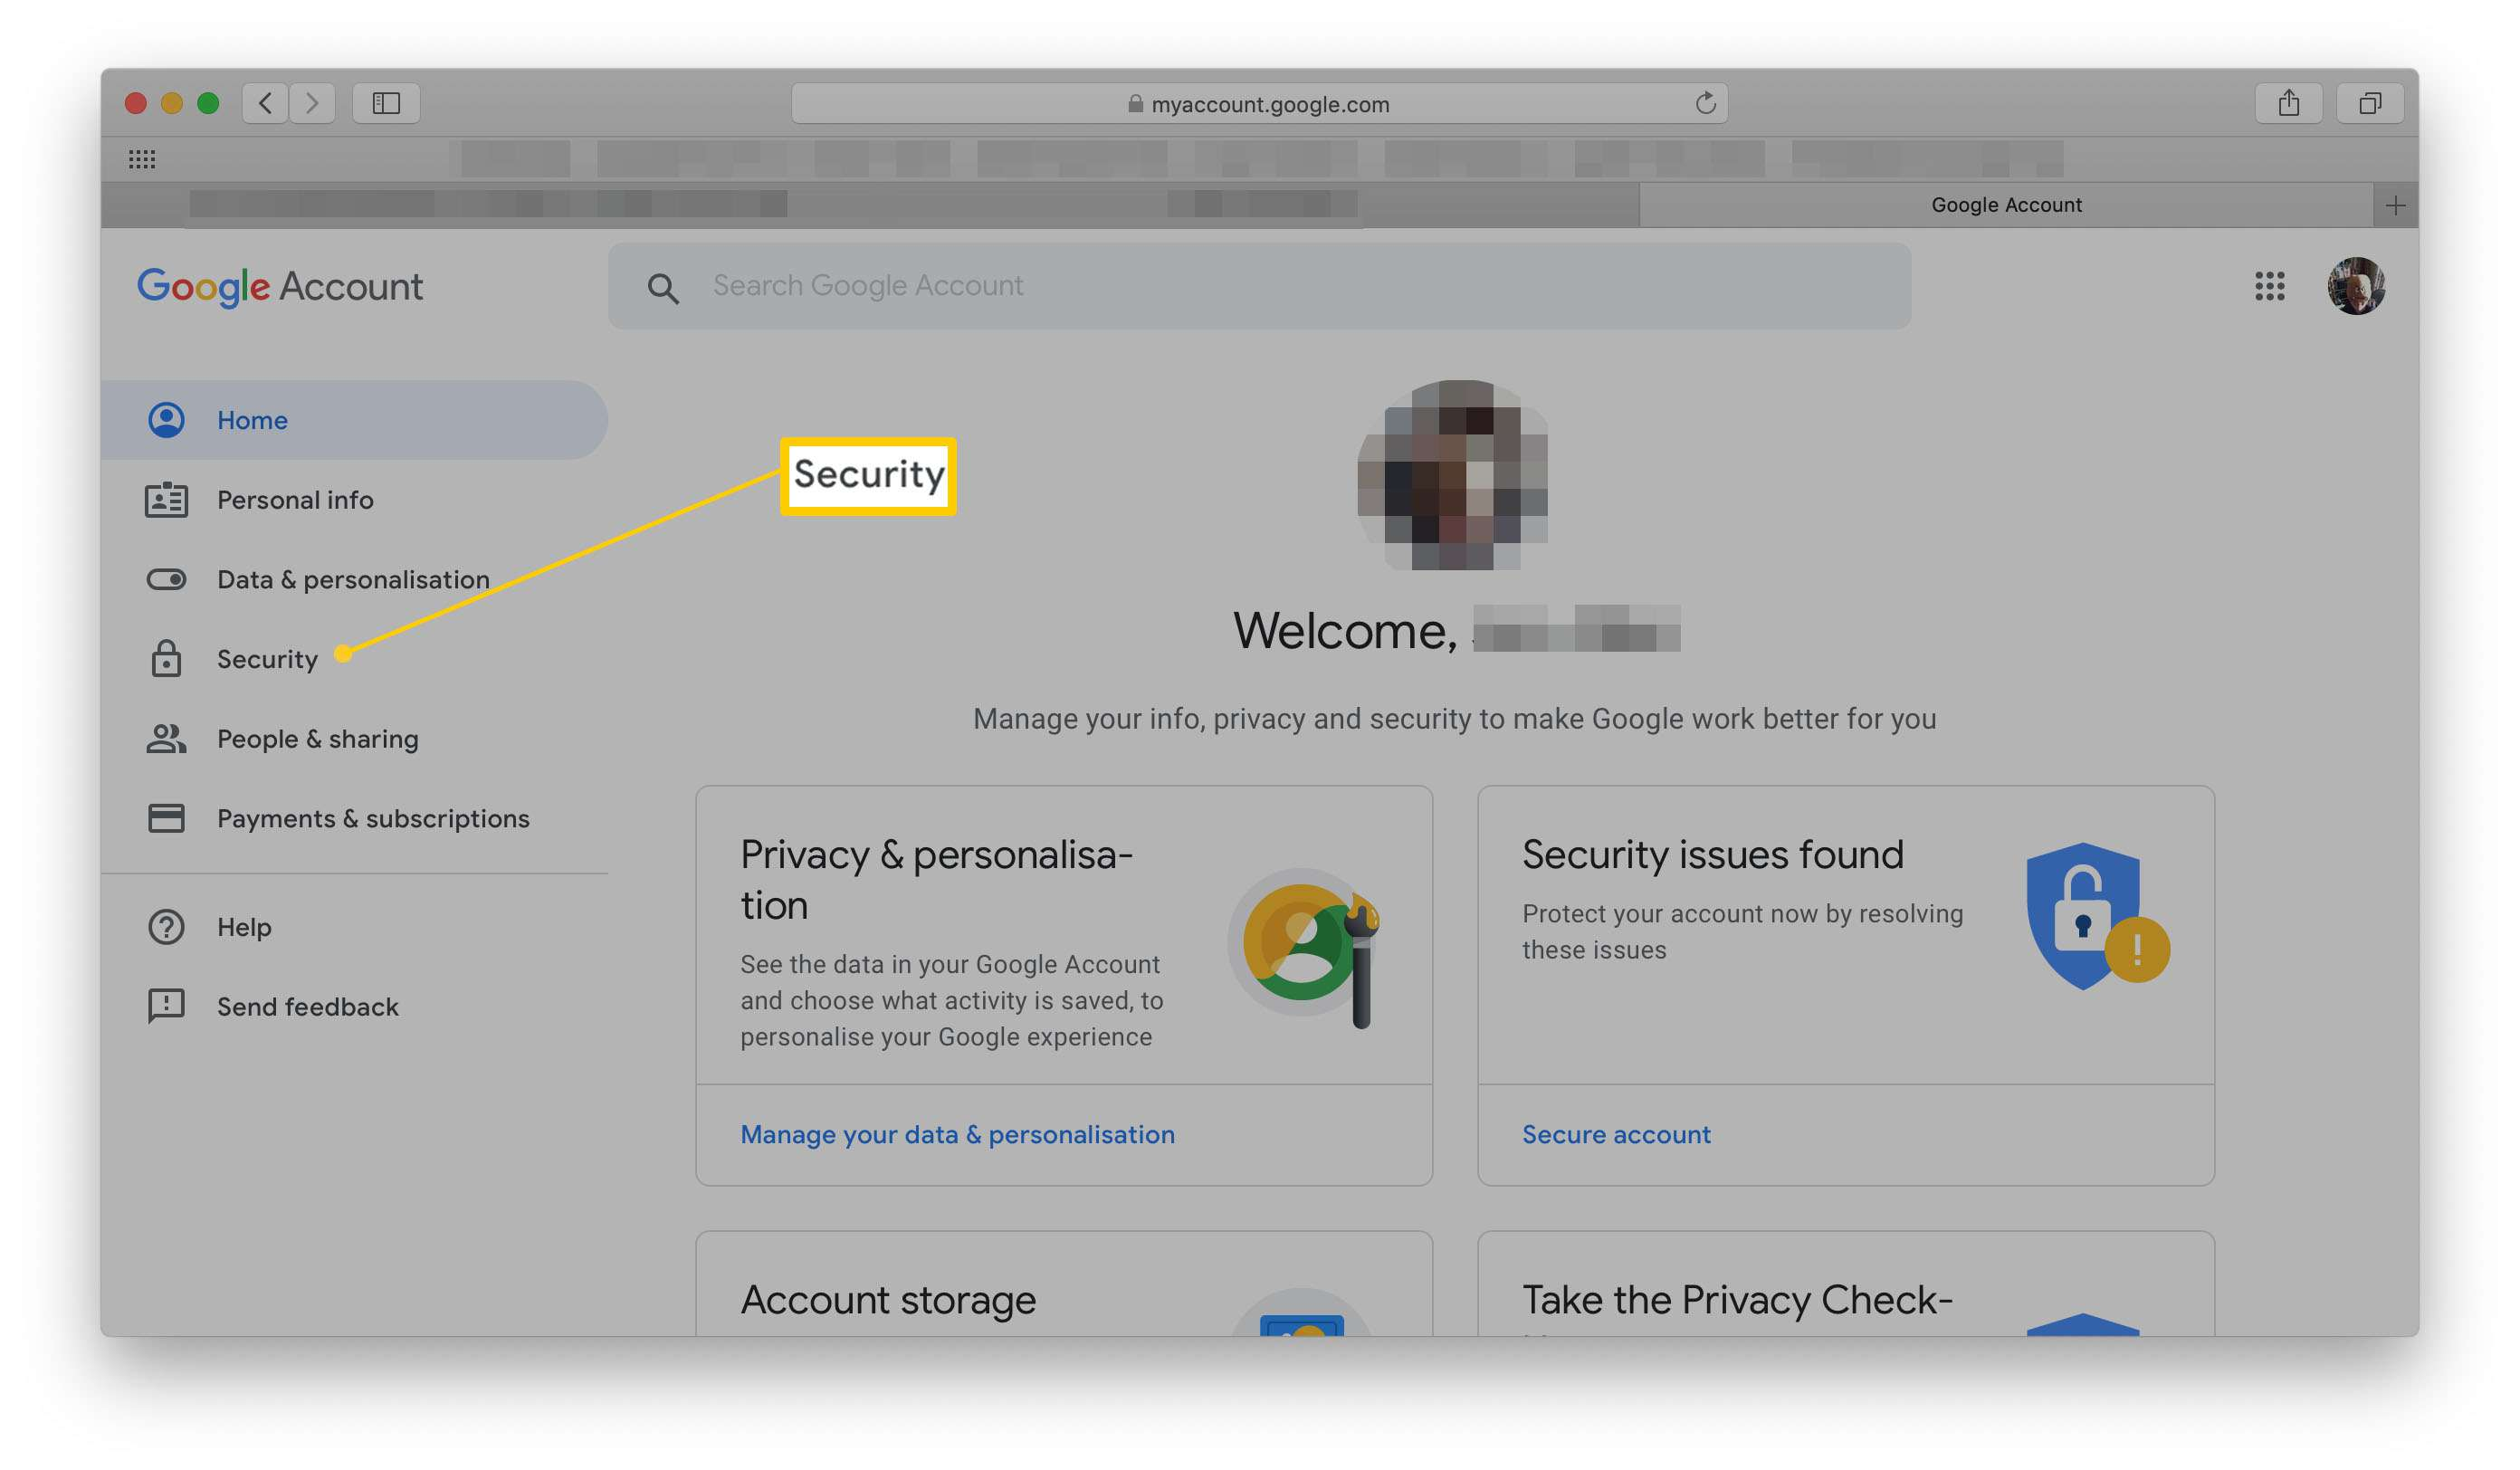 My Account on Google with Security highlighted